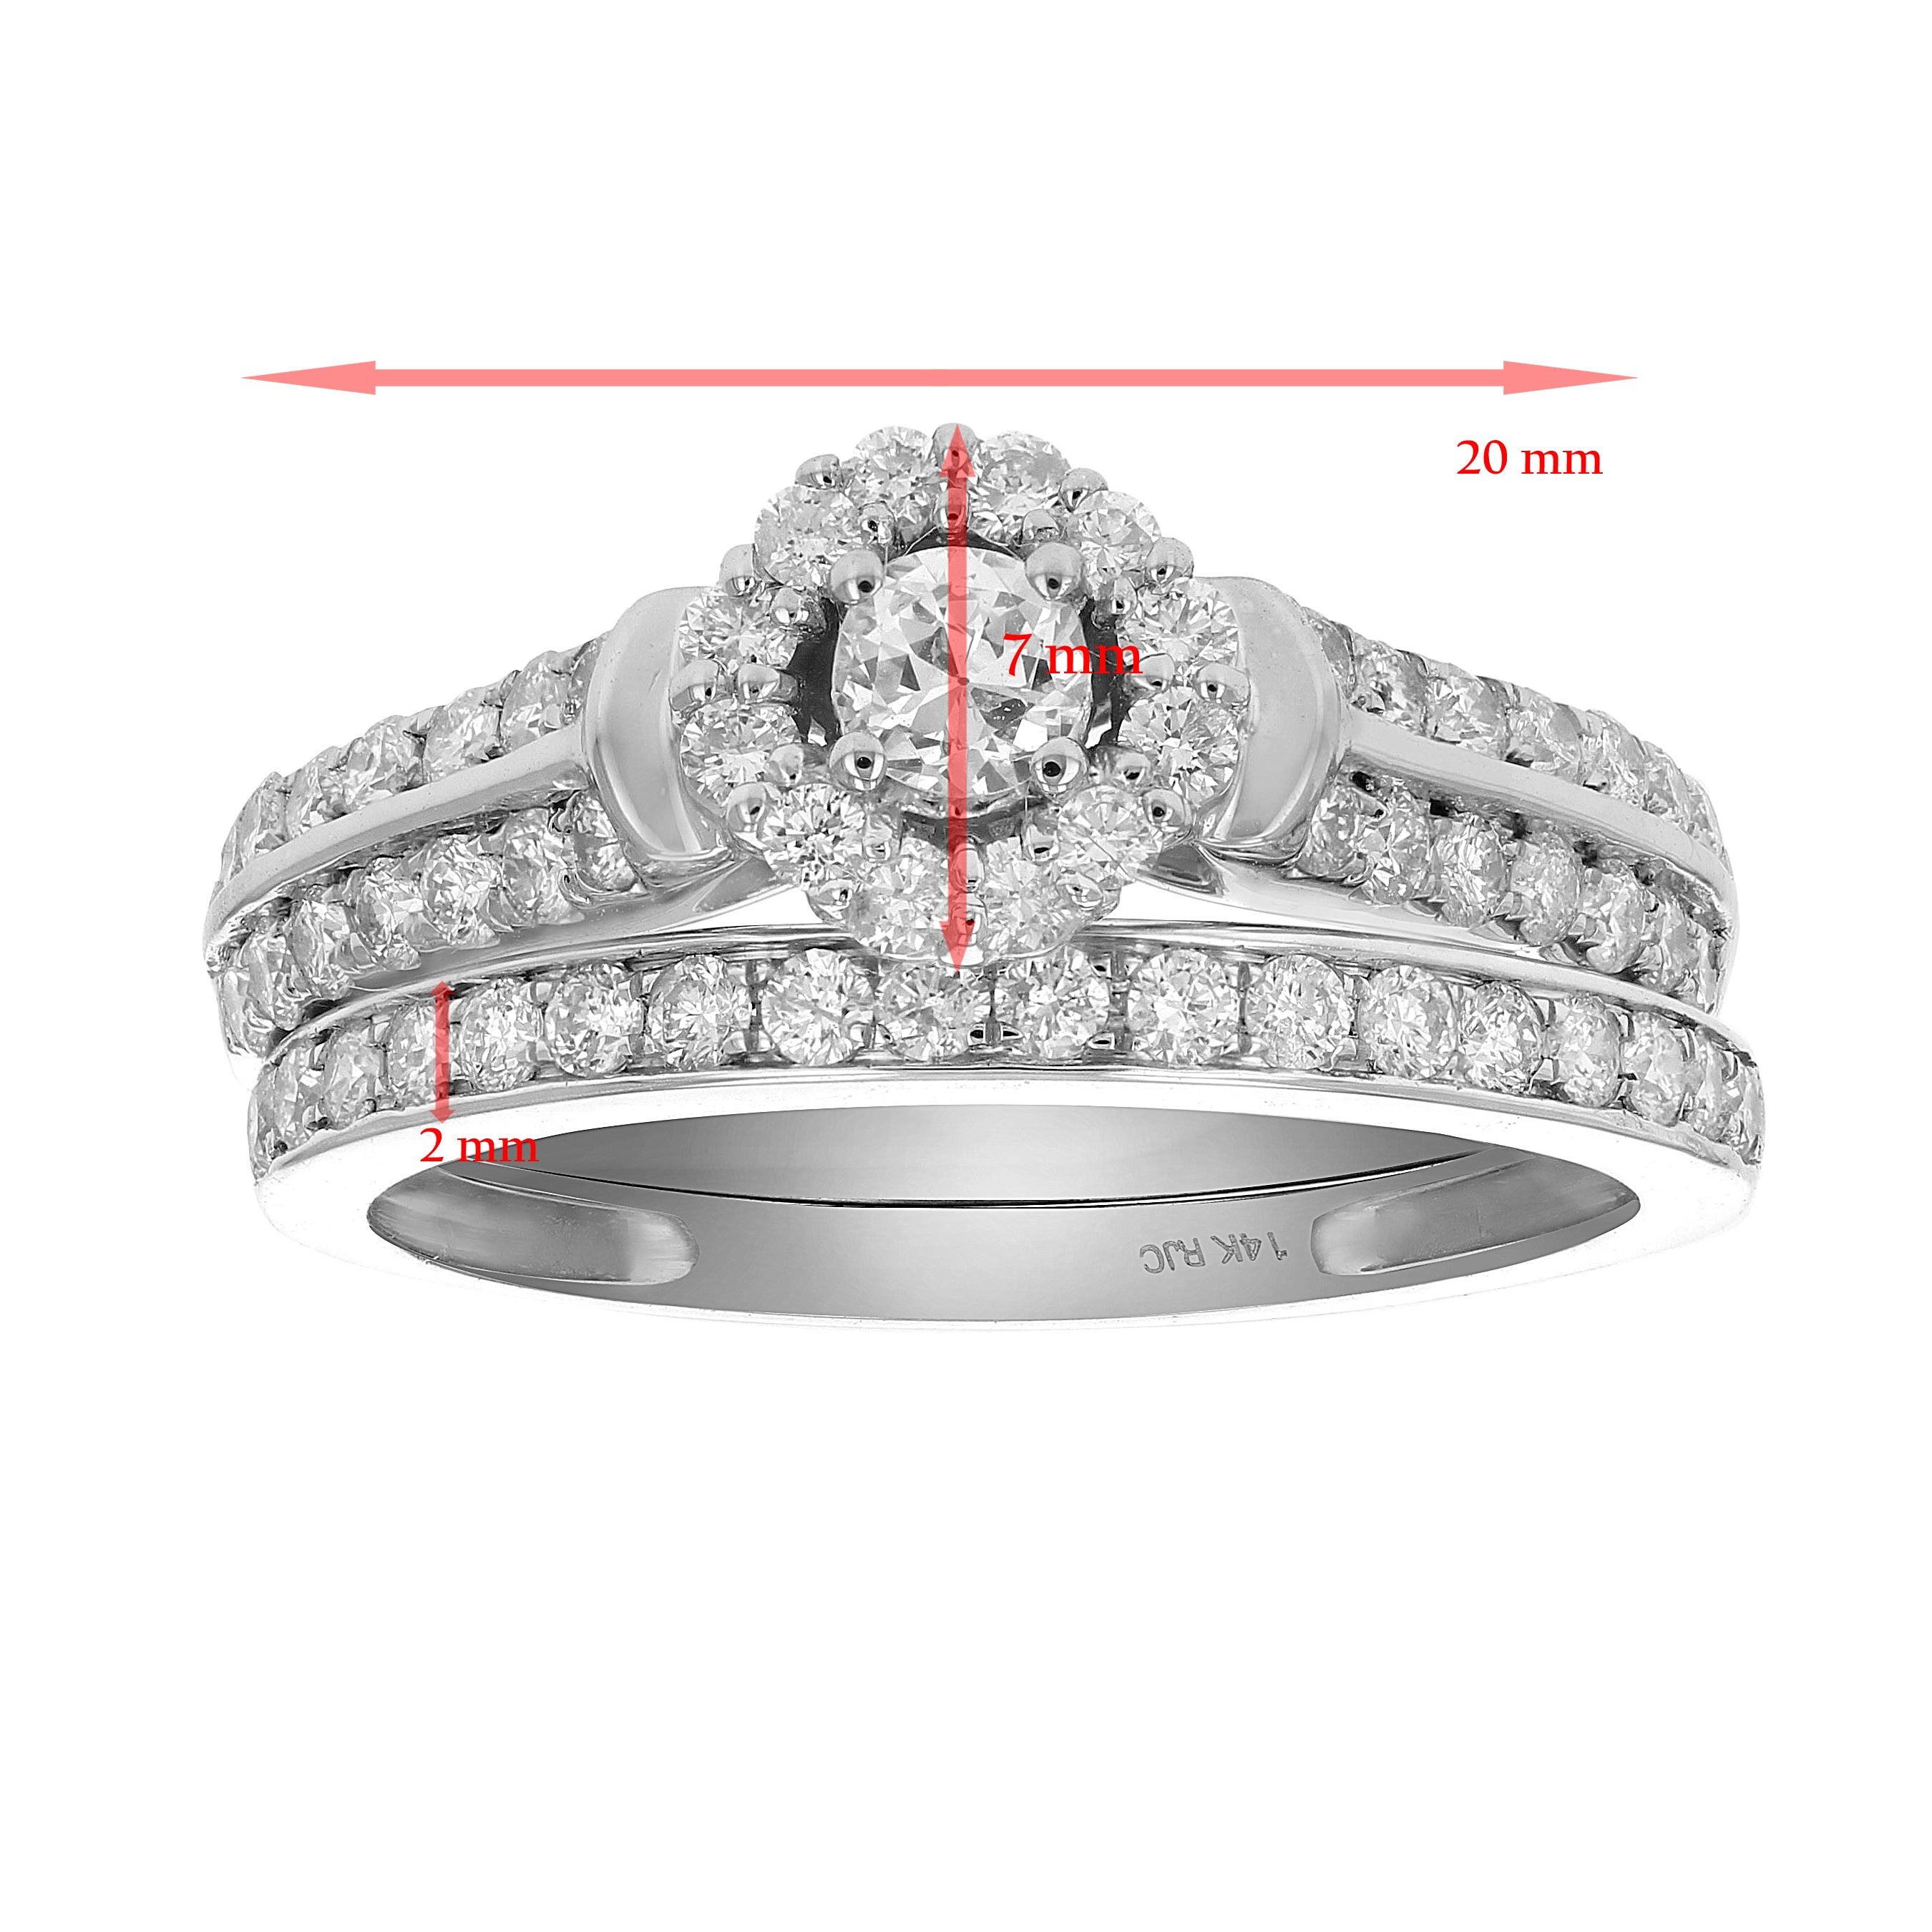 faux ring sparkles stone beloved diamond prong carat ct engagement wedding round products anniversary cut serendipity rings solitaire cubic tampla zirconia cz